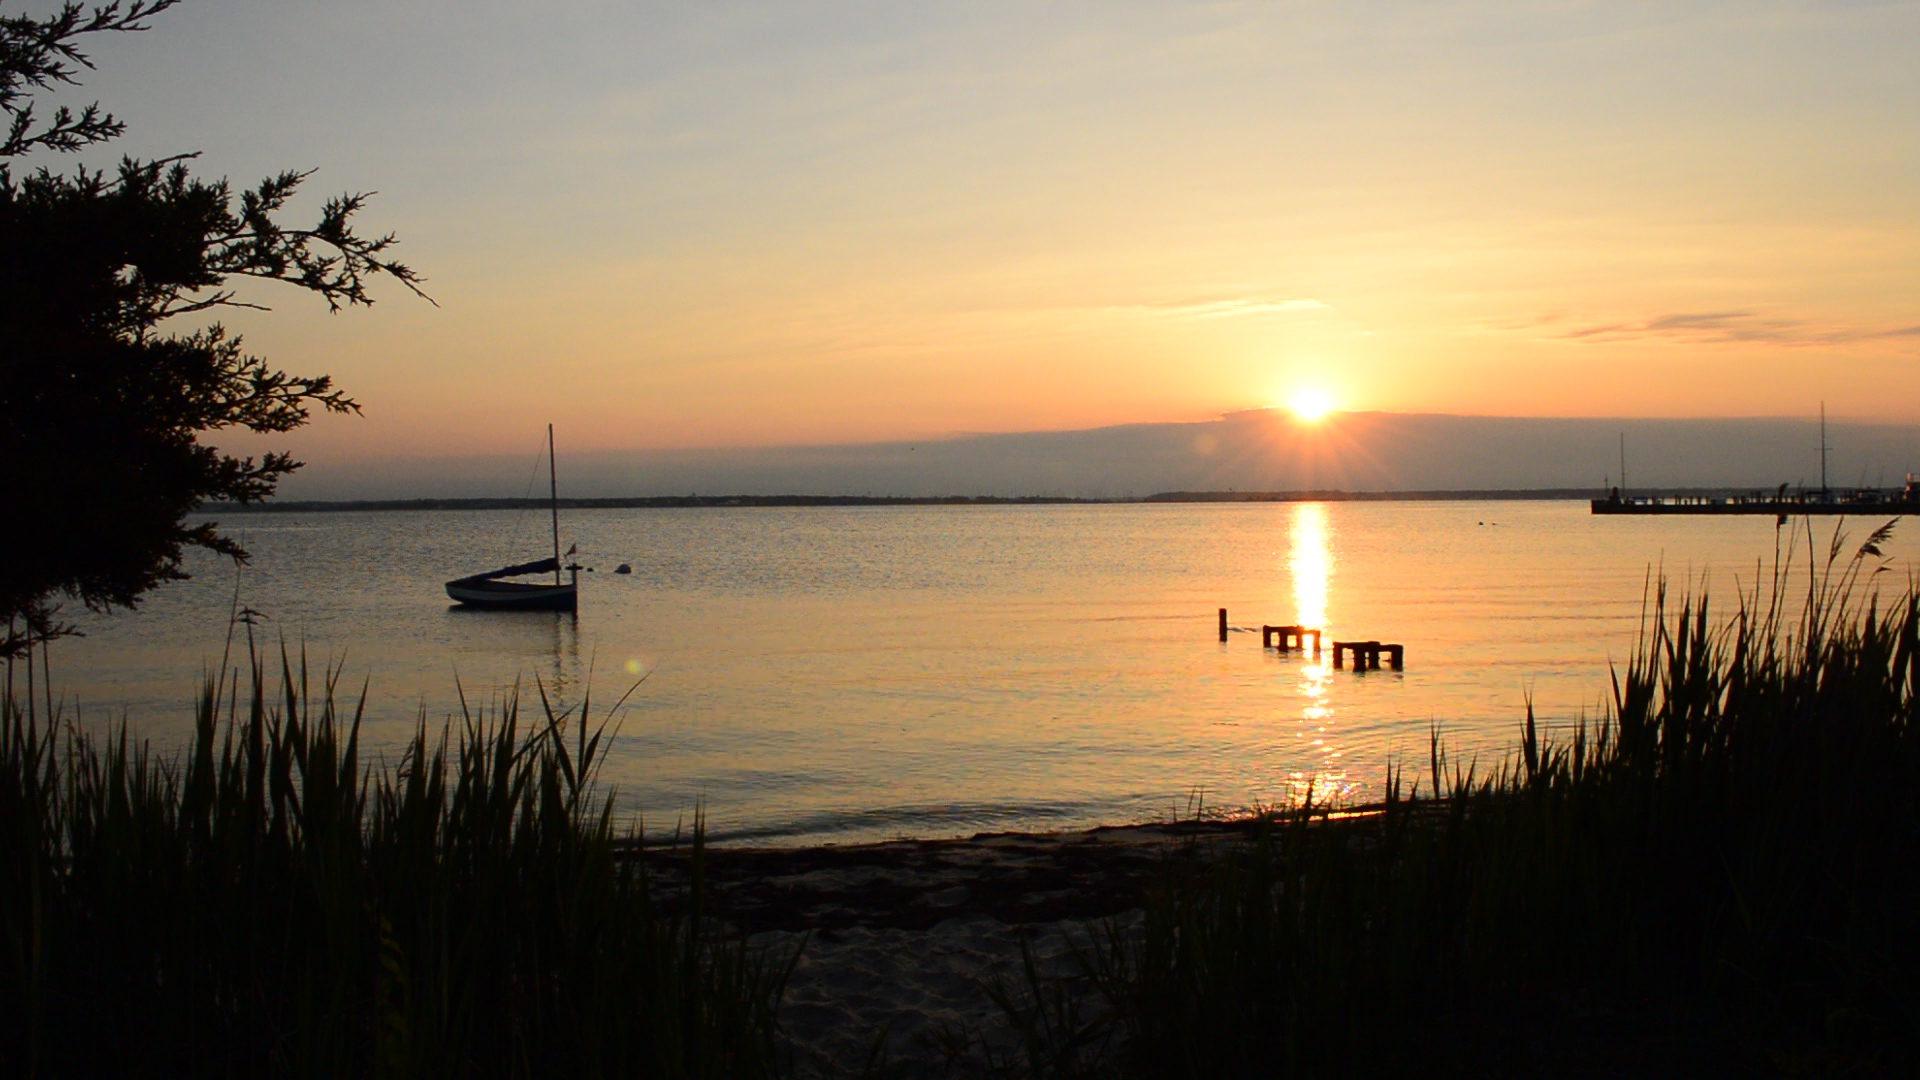 Sunset on Barnegat Bay in Seaside Park (Photo: Daniel Nee)